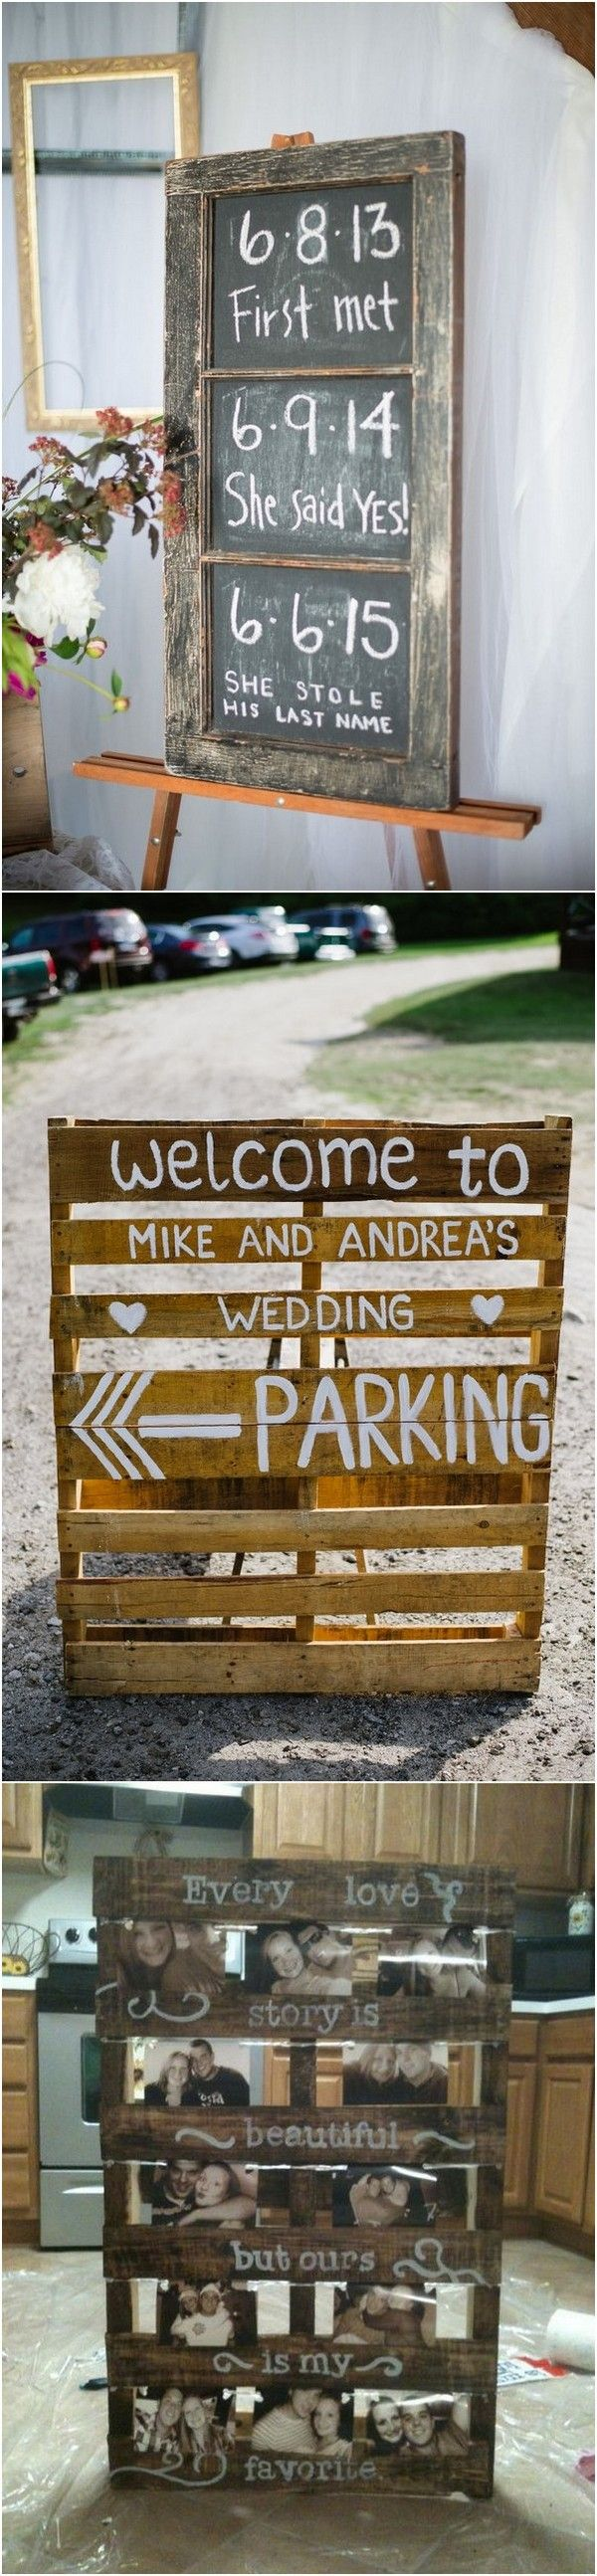 Wedding decorations with lights november 2018 Trending Country Rustic Farm Wedding Ideas for